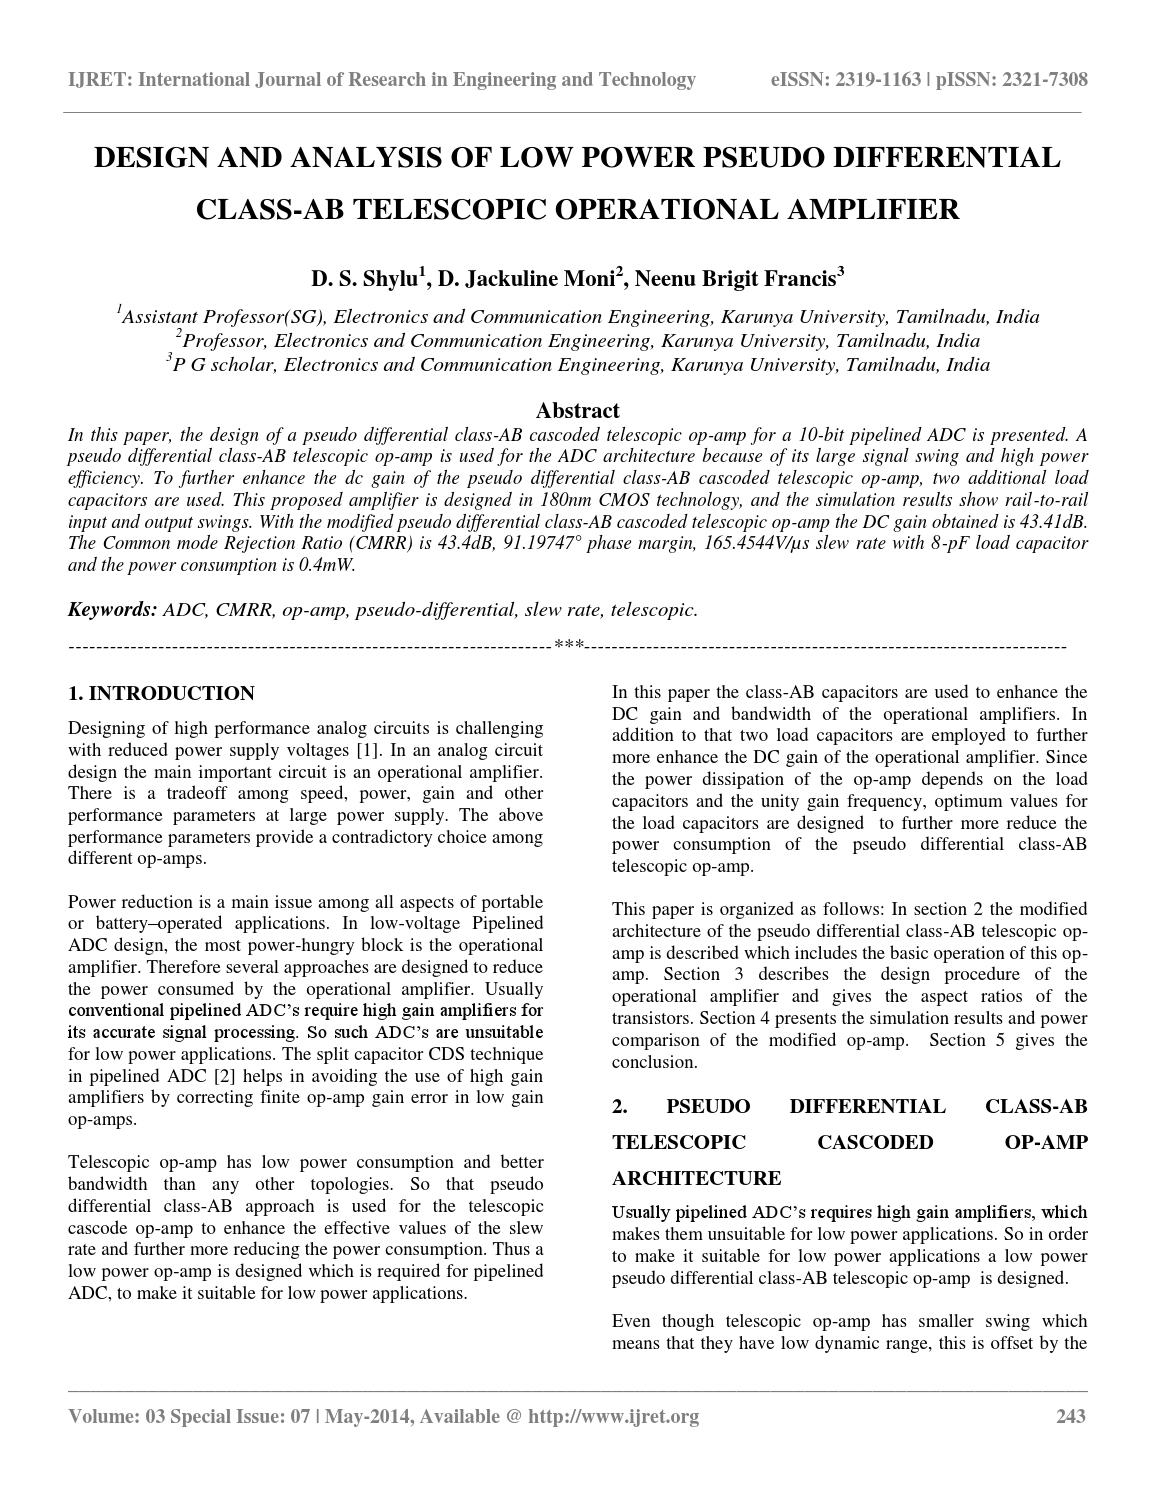 Design And Analysis Of Low Power Pseudo Differential Class Ab Op Amp Circuit Telescopic Operational Amplifier By Esat Journals Issuu